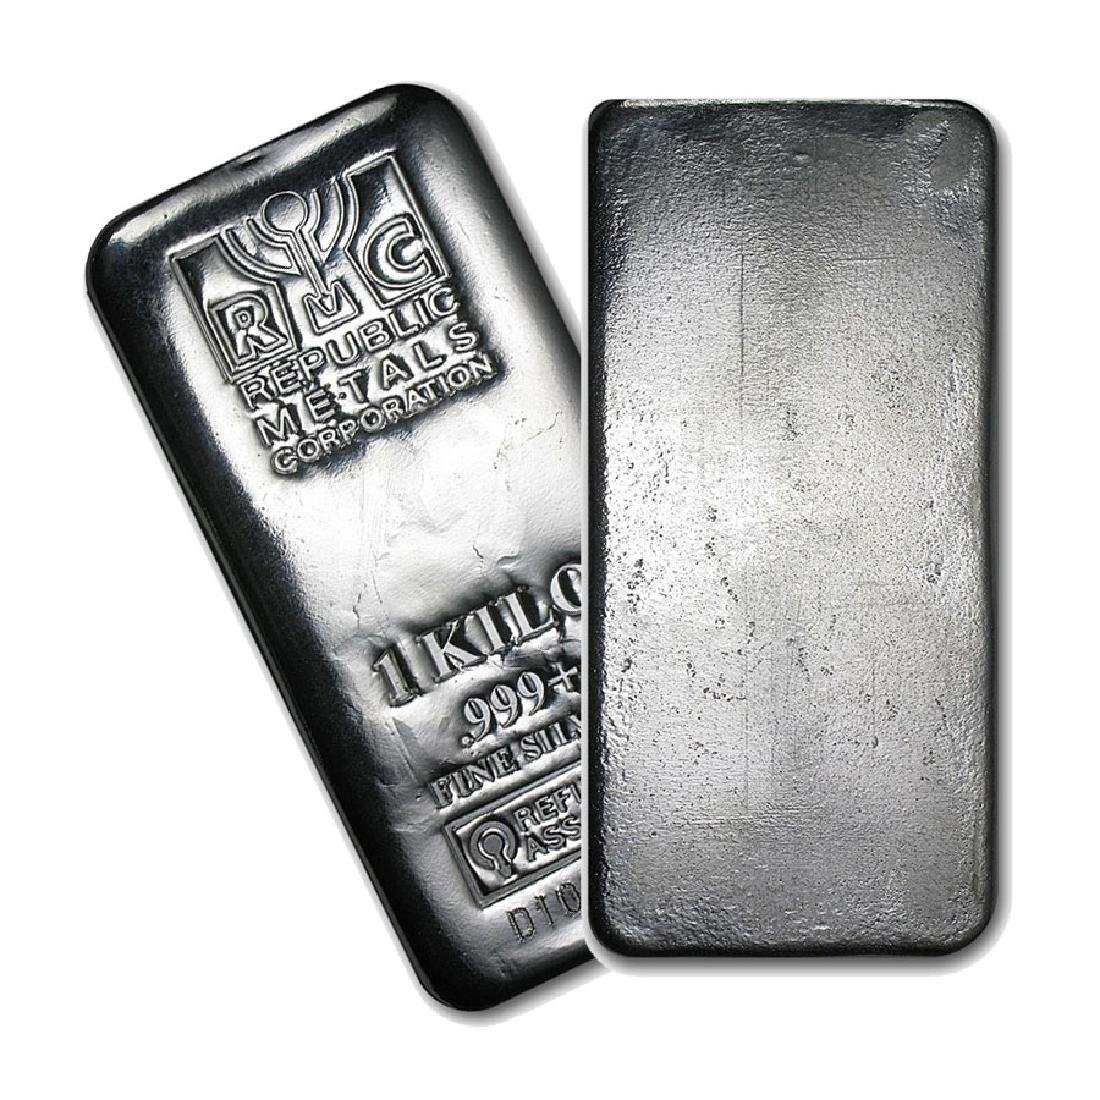 One piece 1 kilo 0.999 Fine Silver Bar Republic Metals